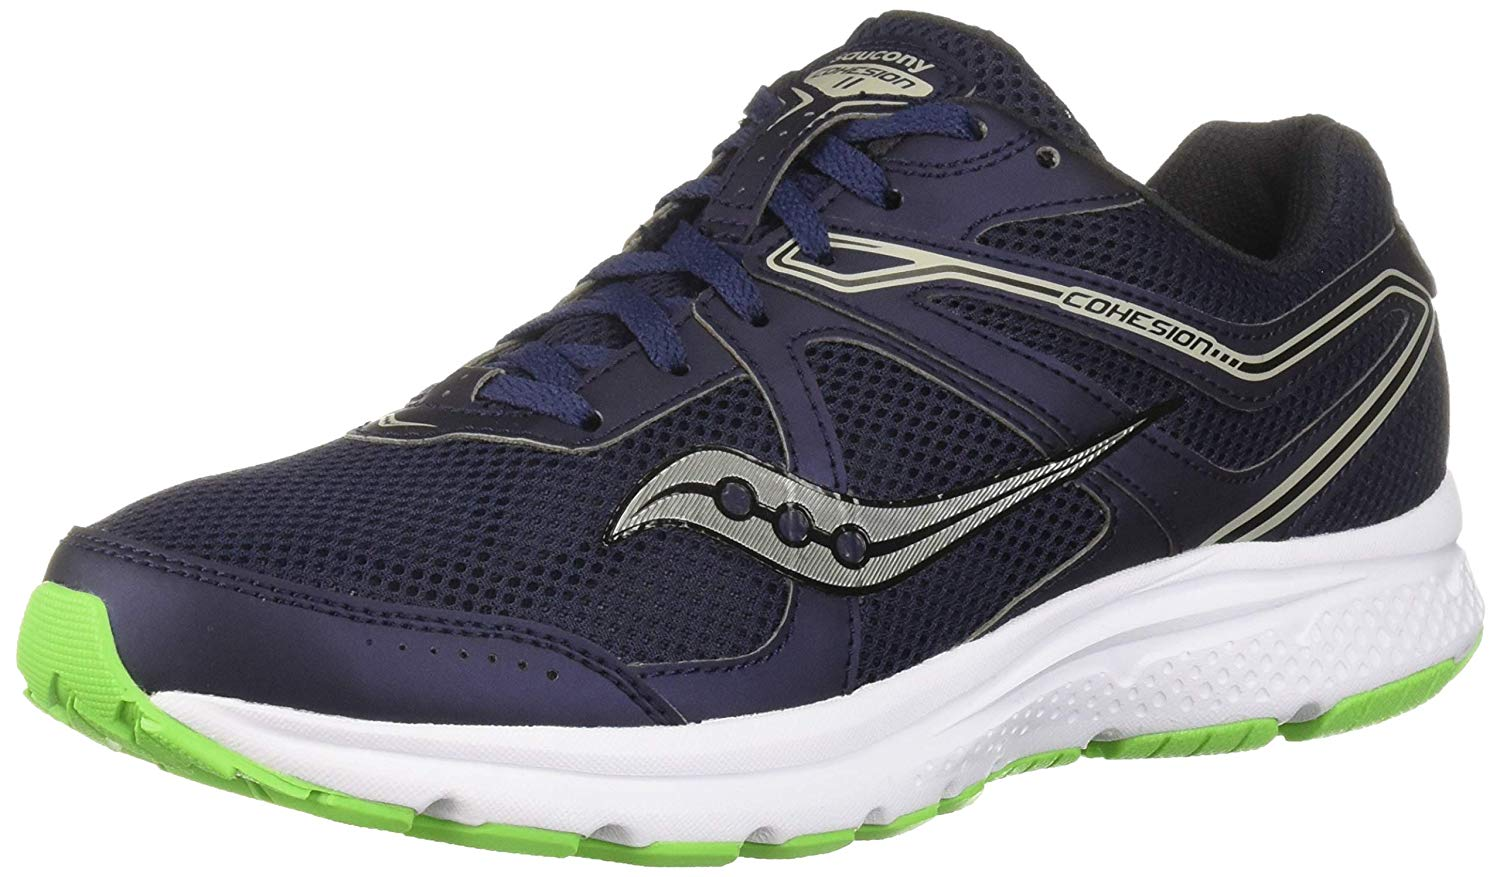 Top Lace Up Trail Running Shoes